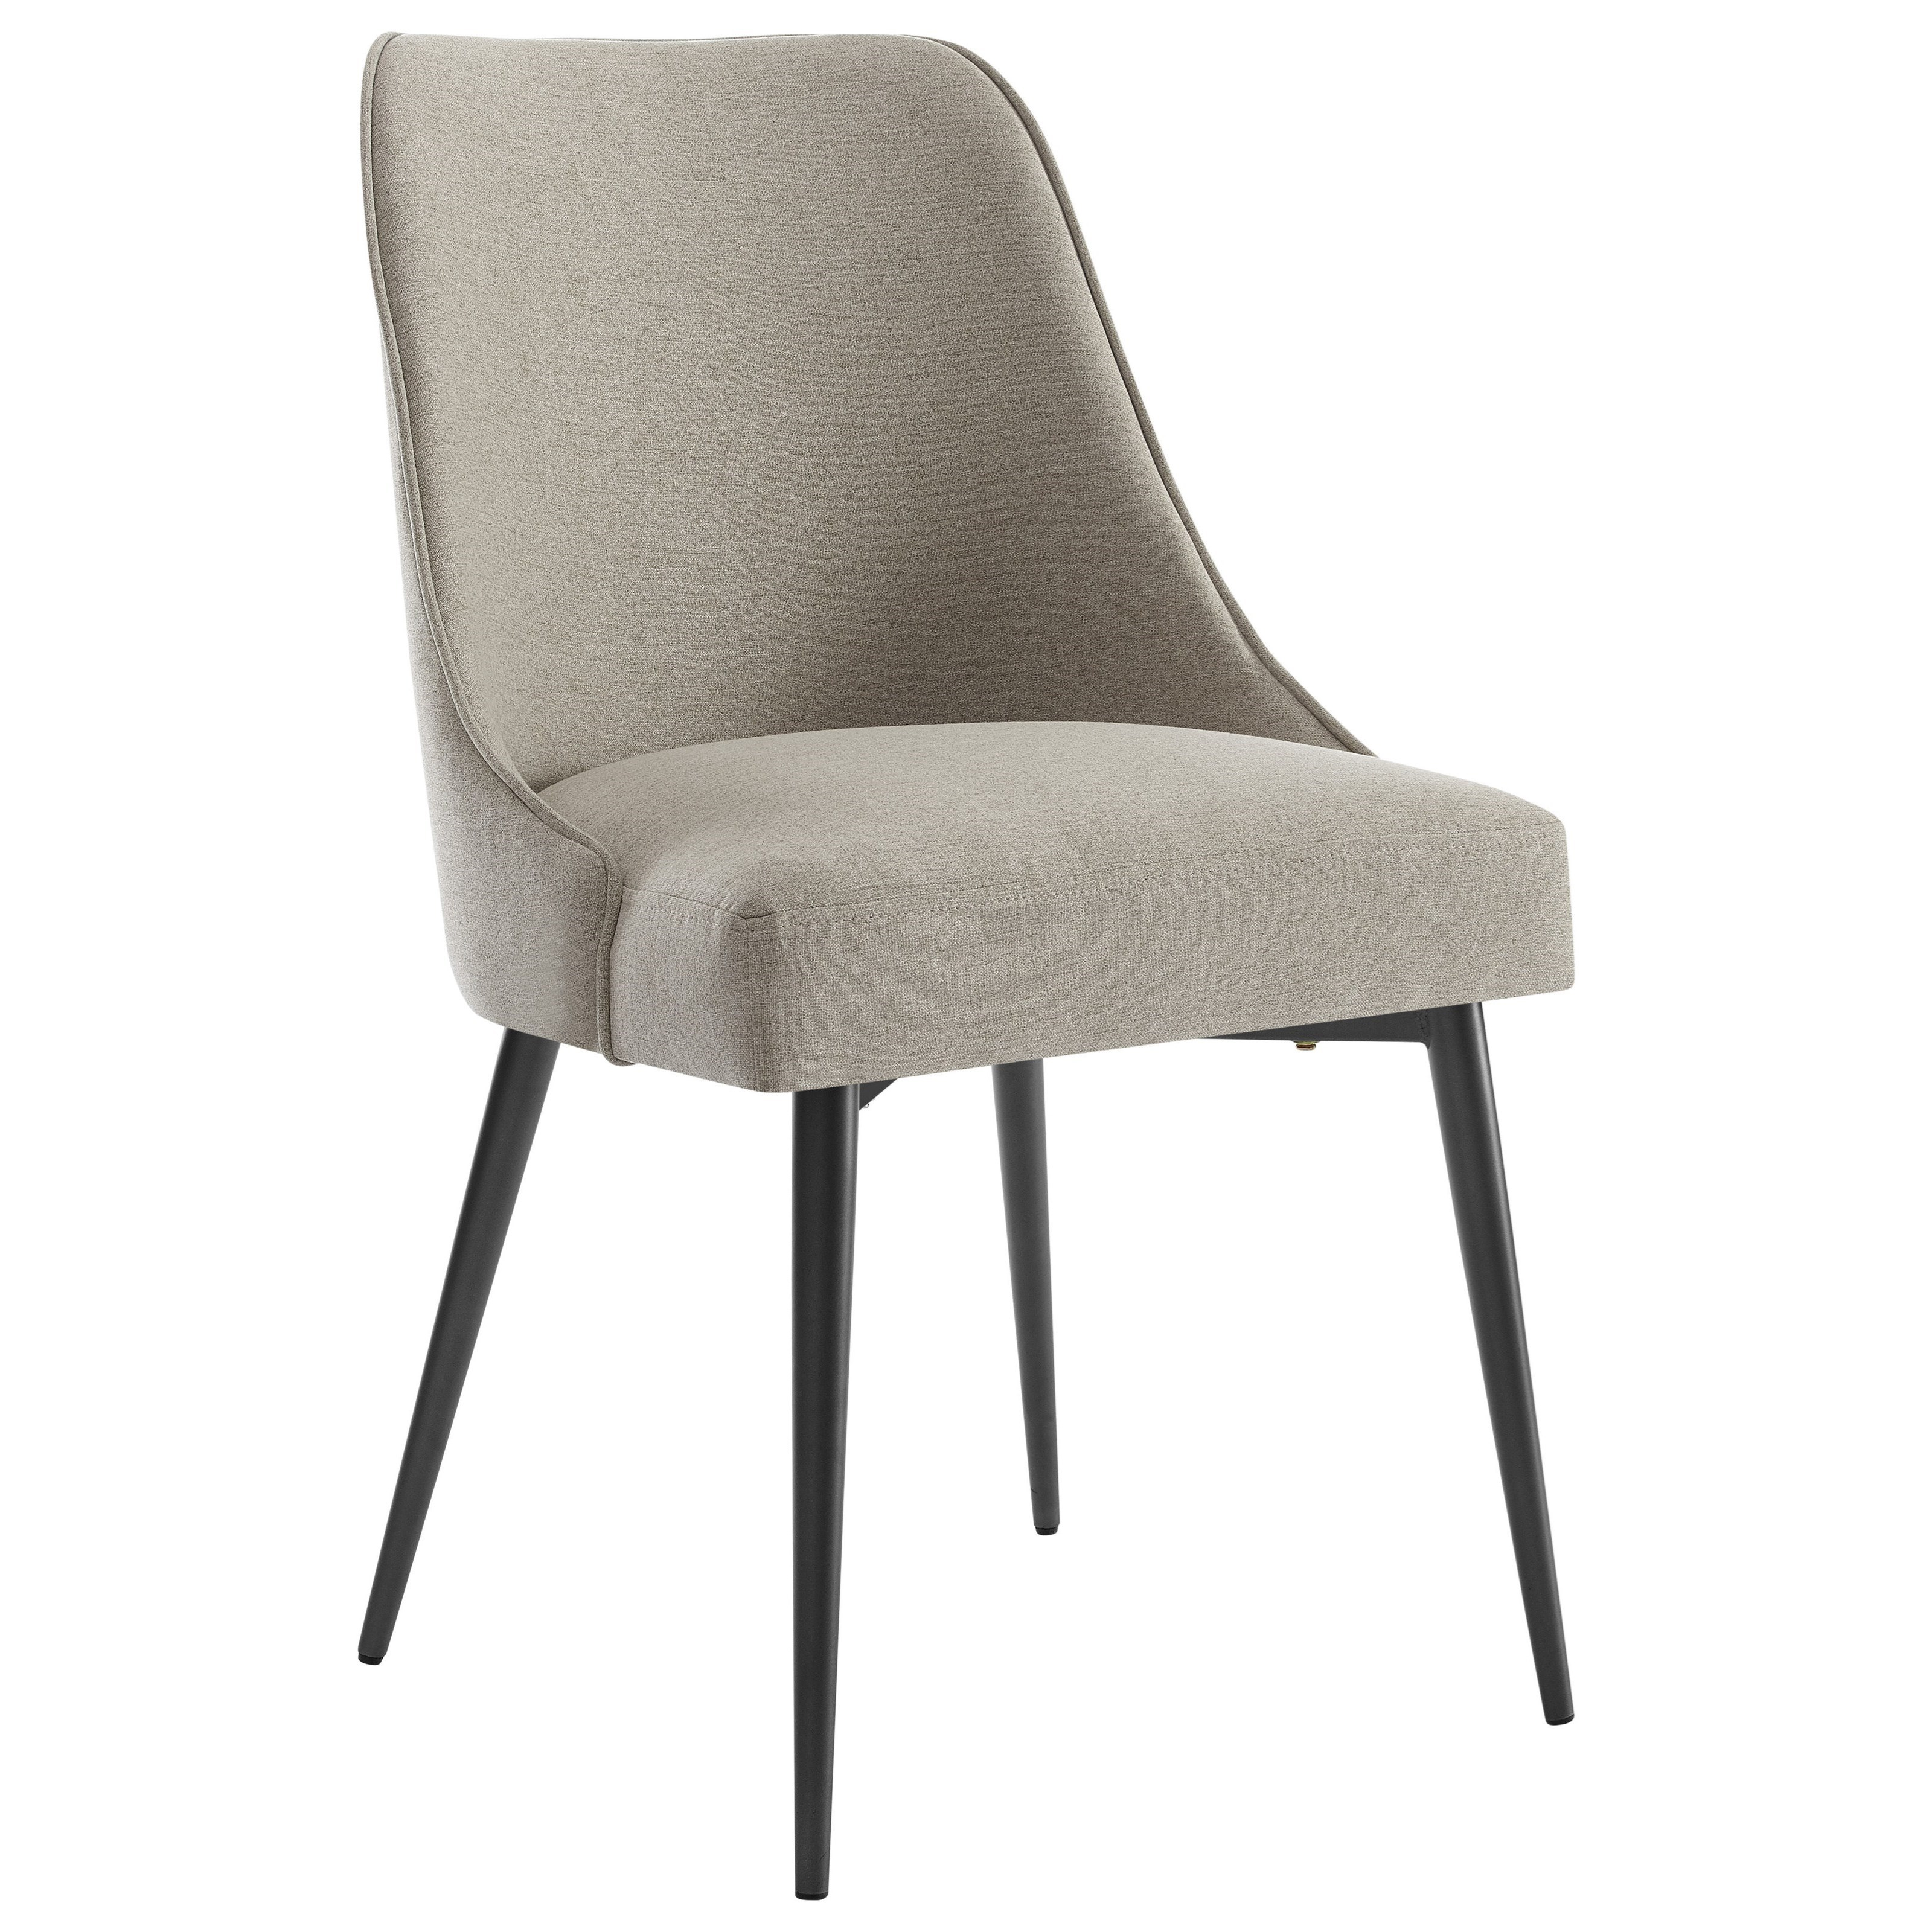 Olson SS Upholstered Side Chair by Steve Silver at Northeast Factory Direct